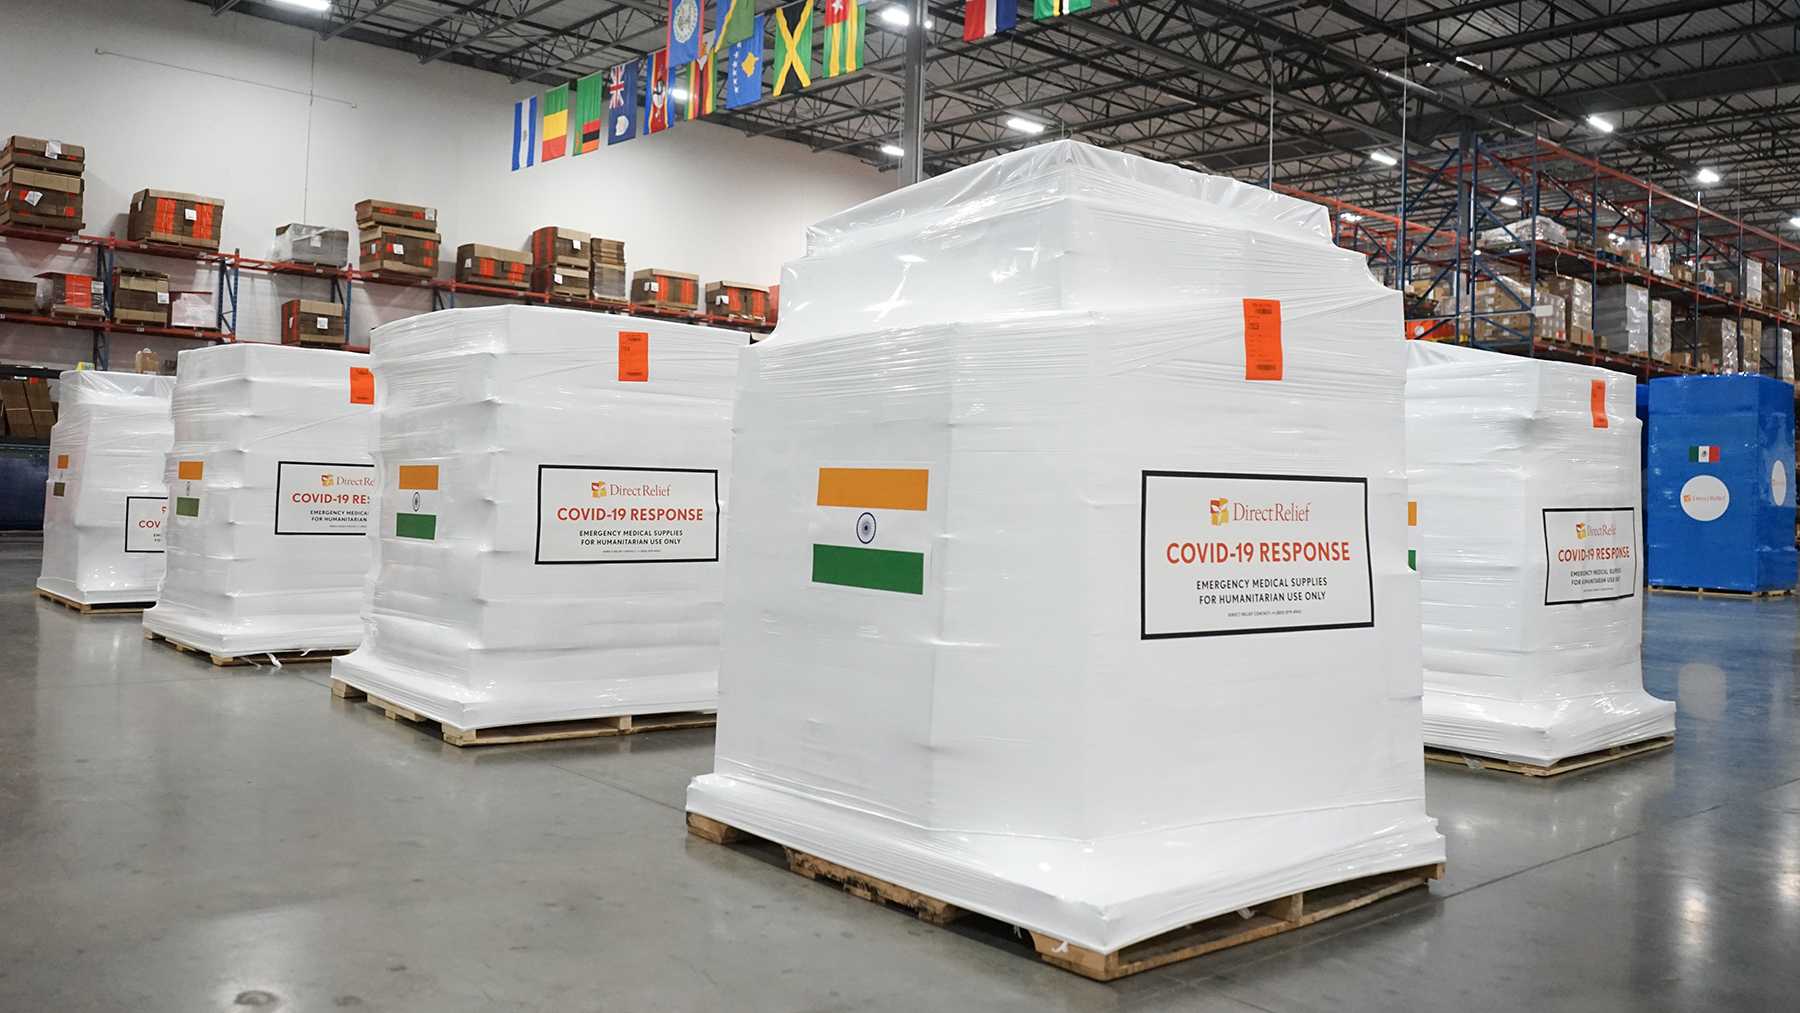 Medical aid is staged on April 30, 2021, for departure to India. (Lara Cooper/Direct Relief)